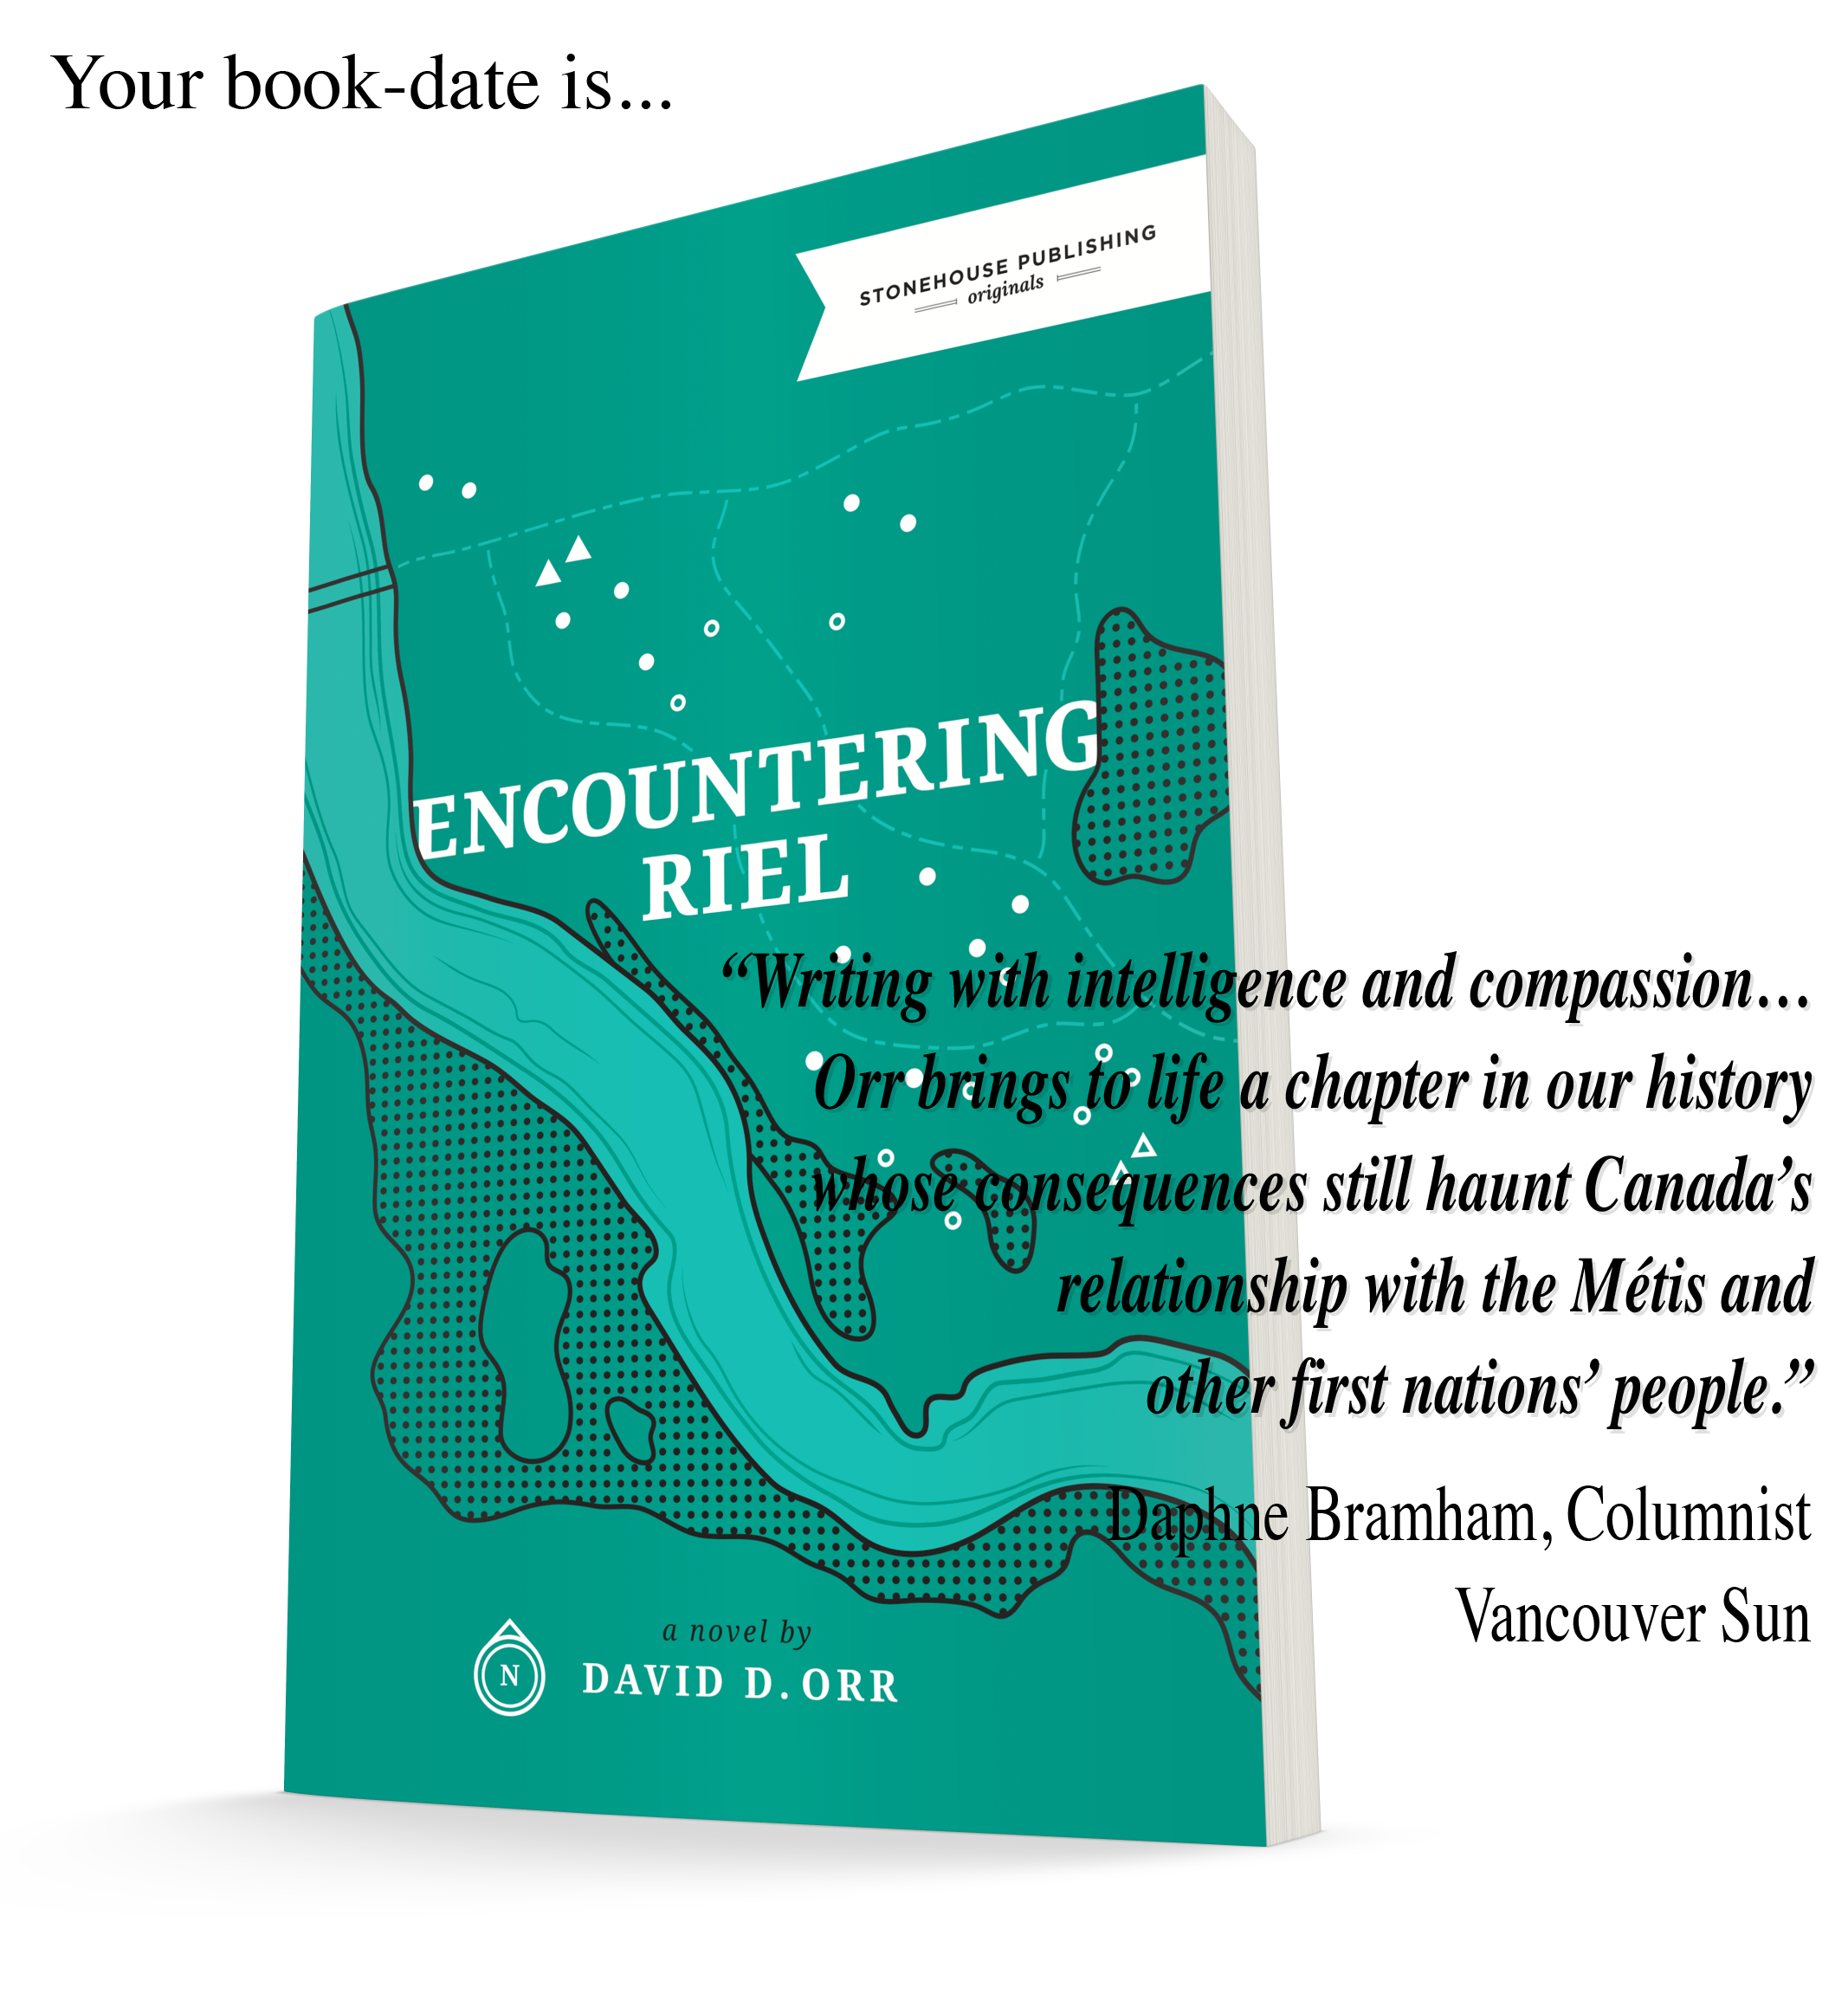 Your book-date is; Encountering Riel